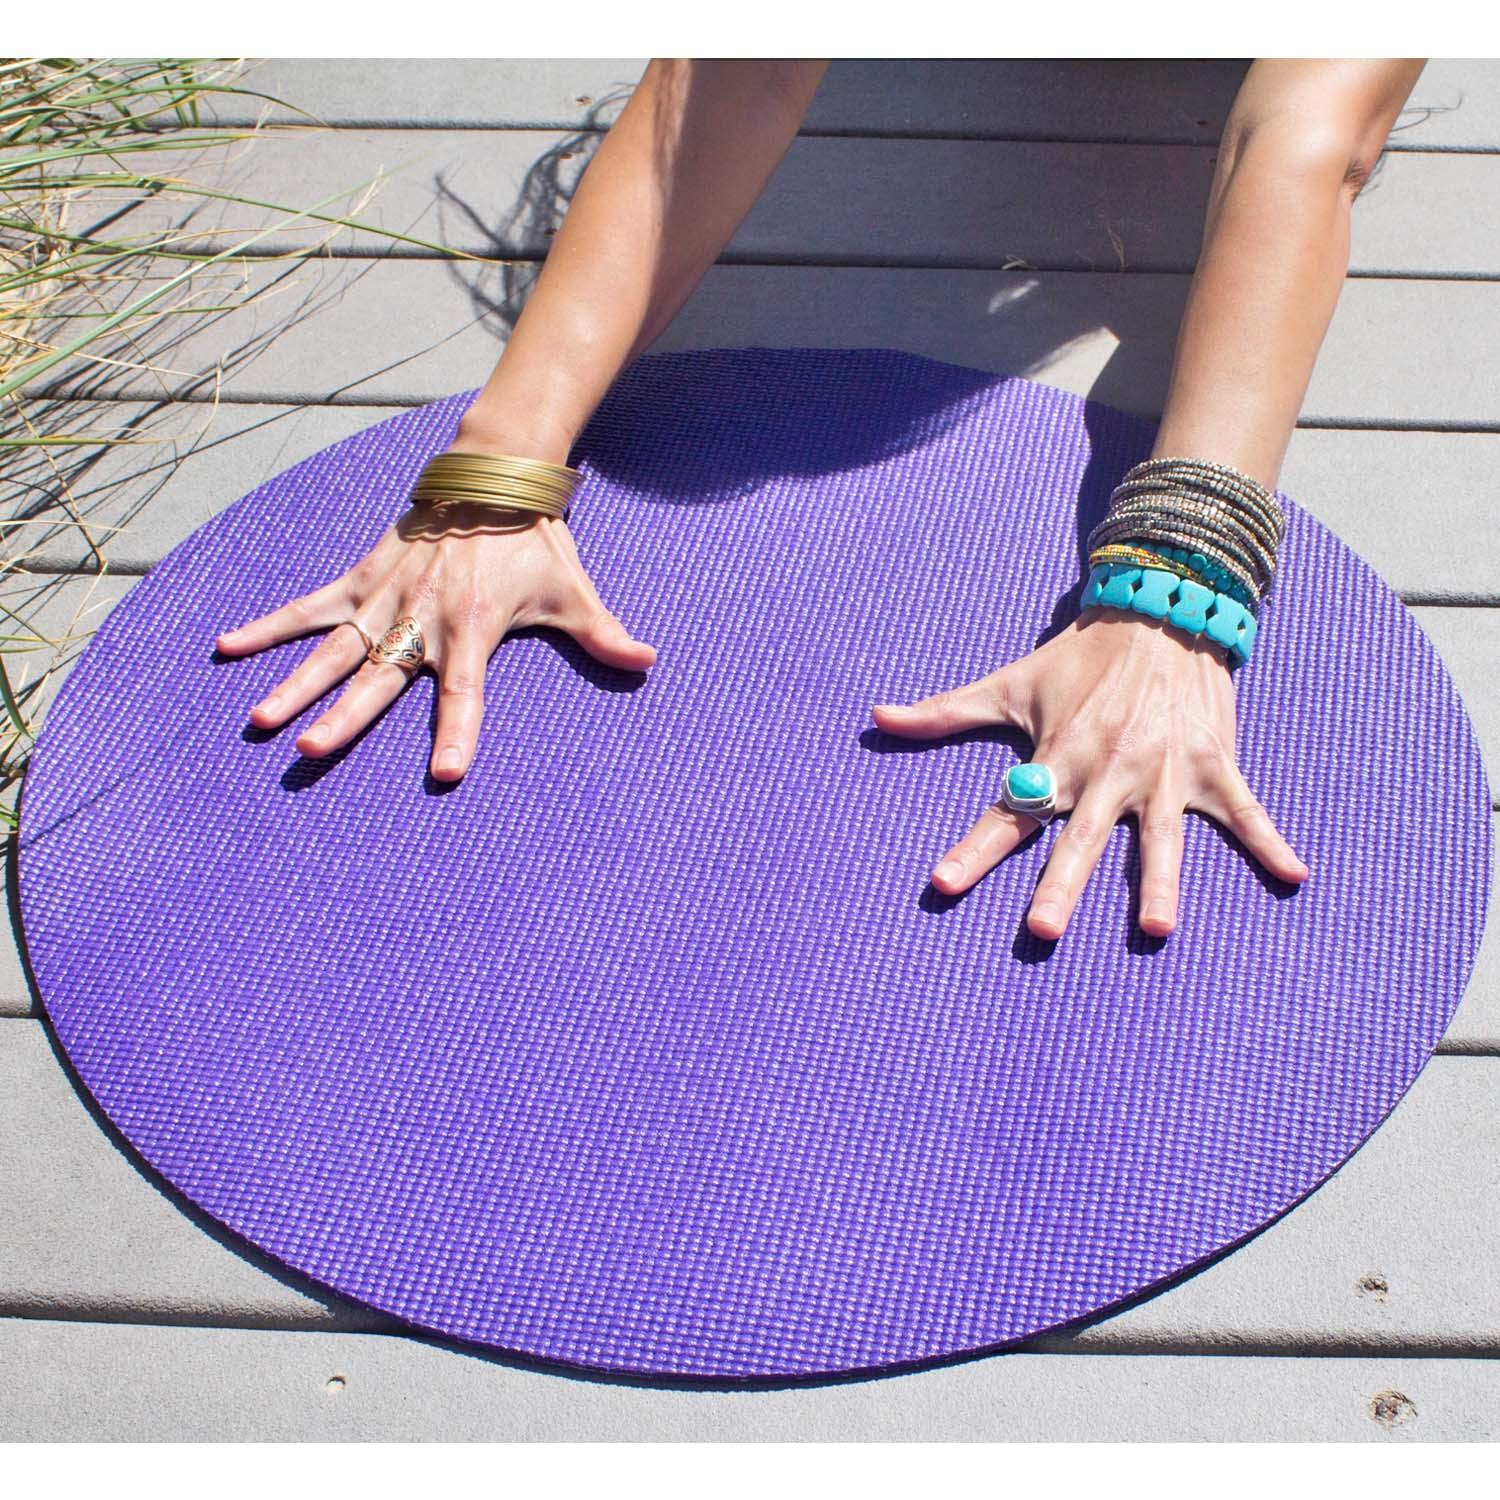 Yoga Direct 2ft Round Yoga Mat